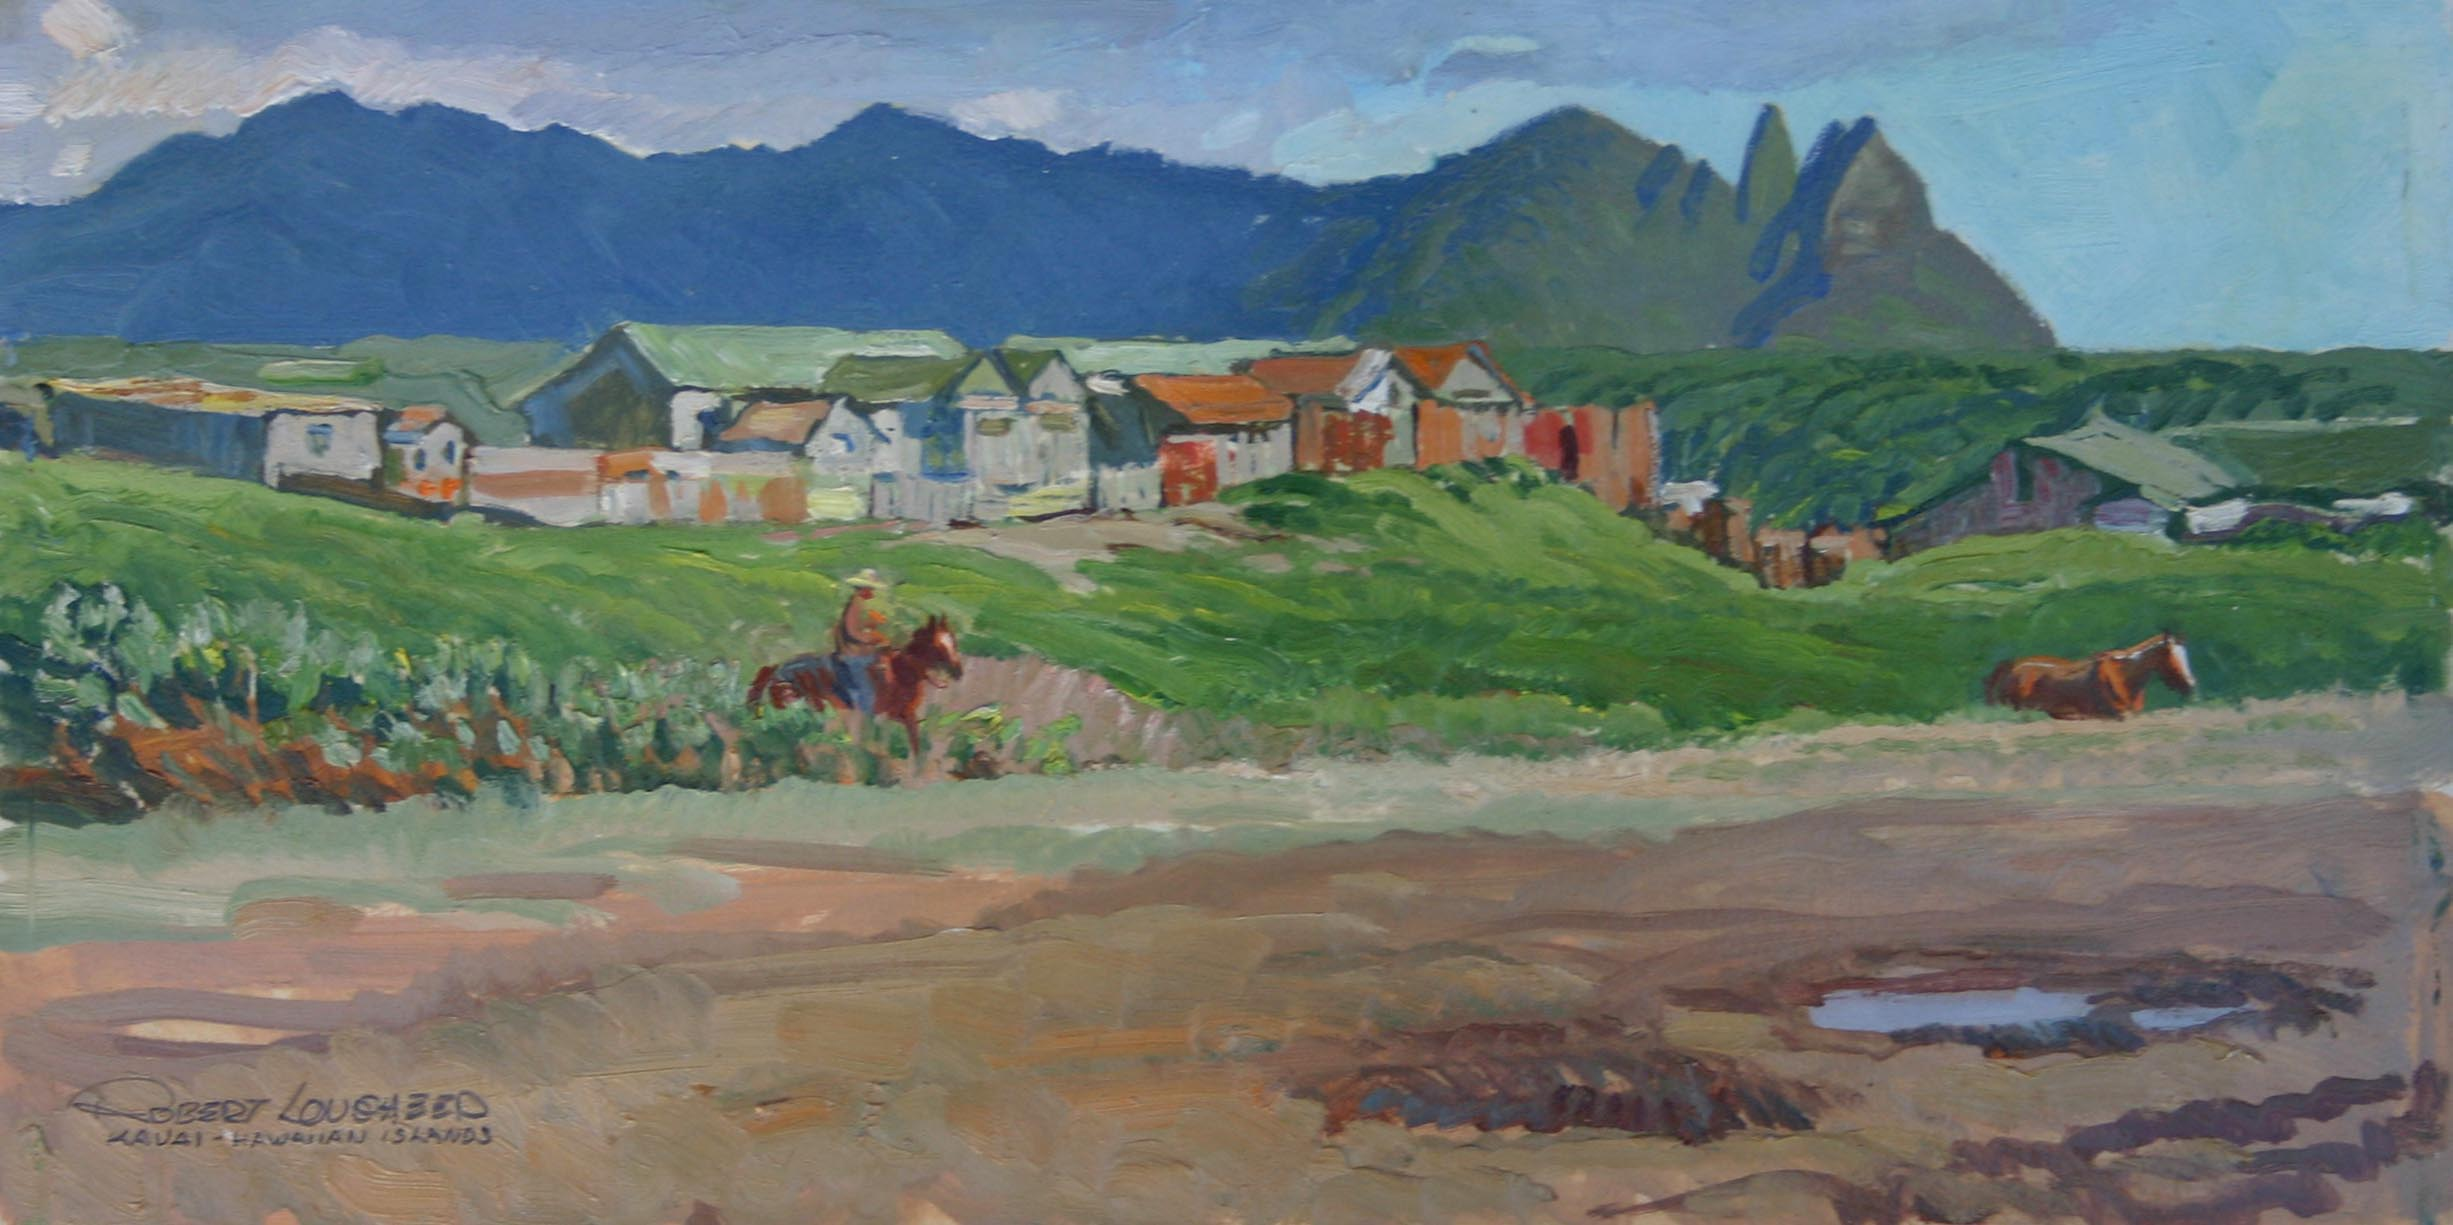 Driving North From Ka... by  Robert Lougheed - Masterpiece Online